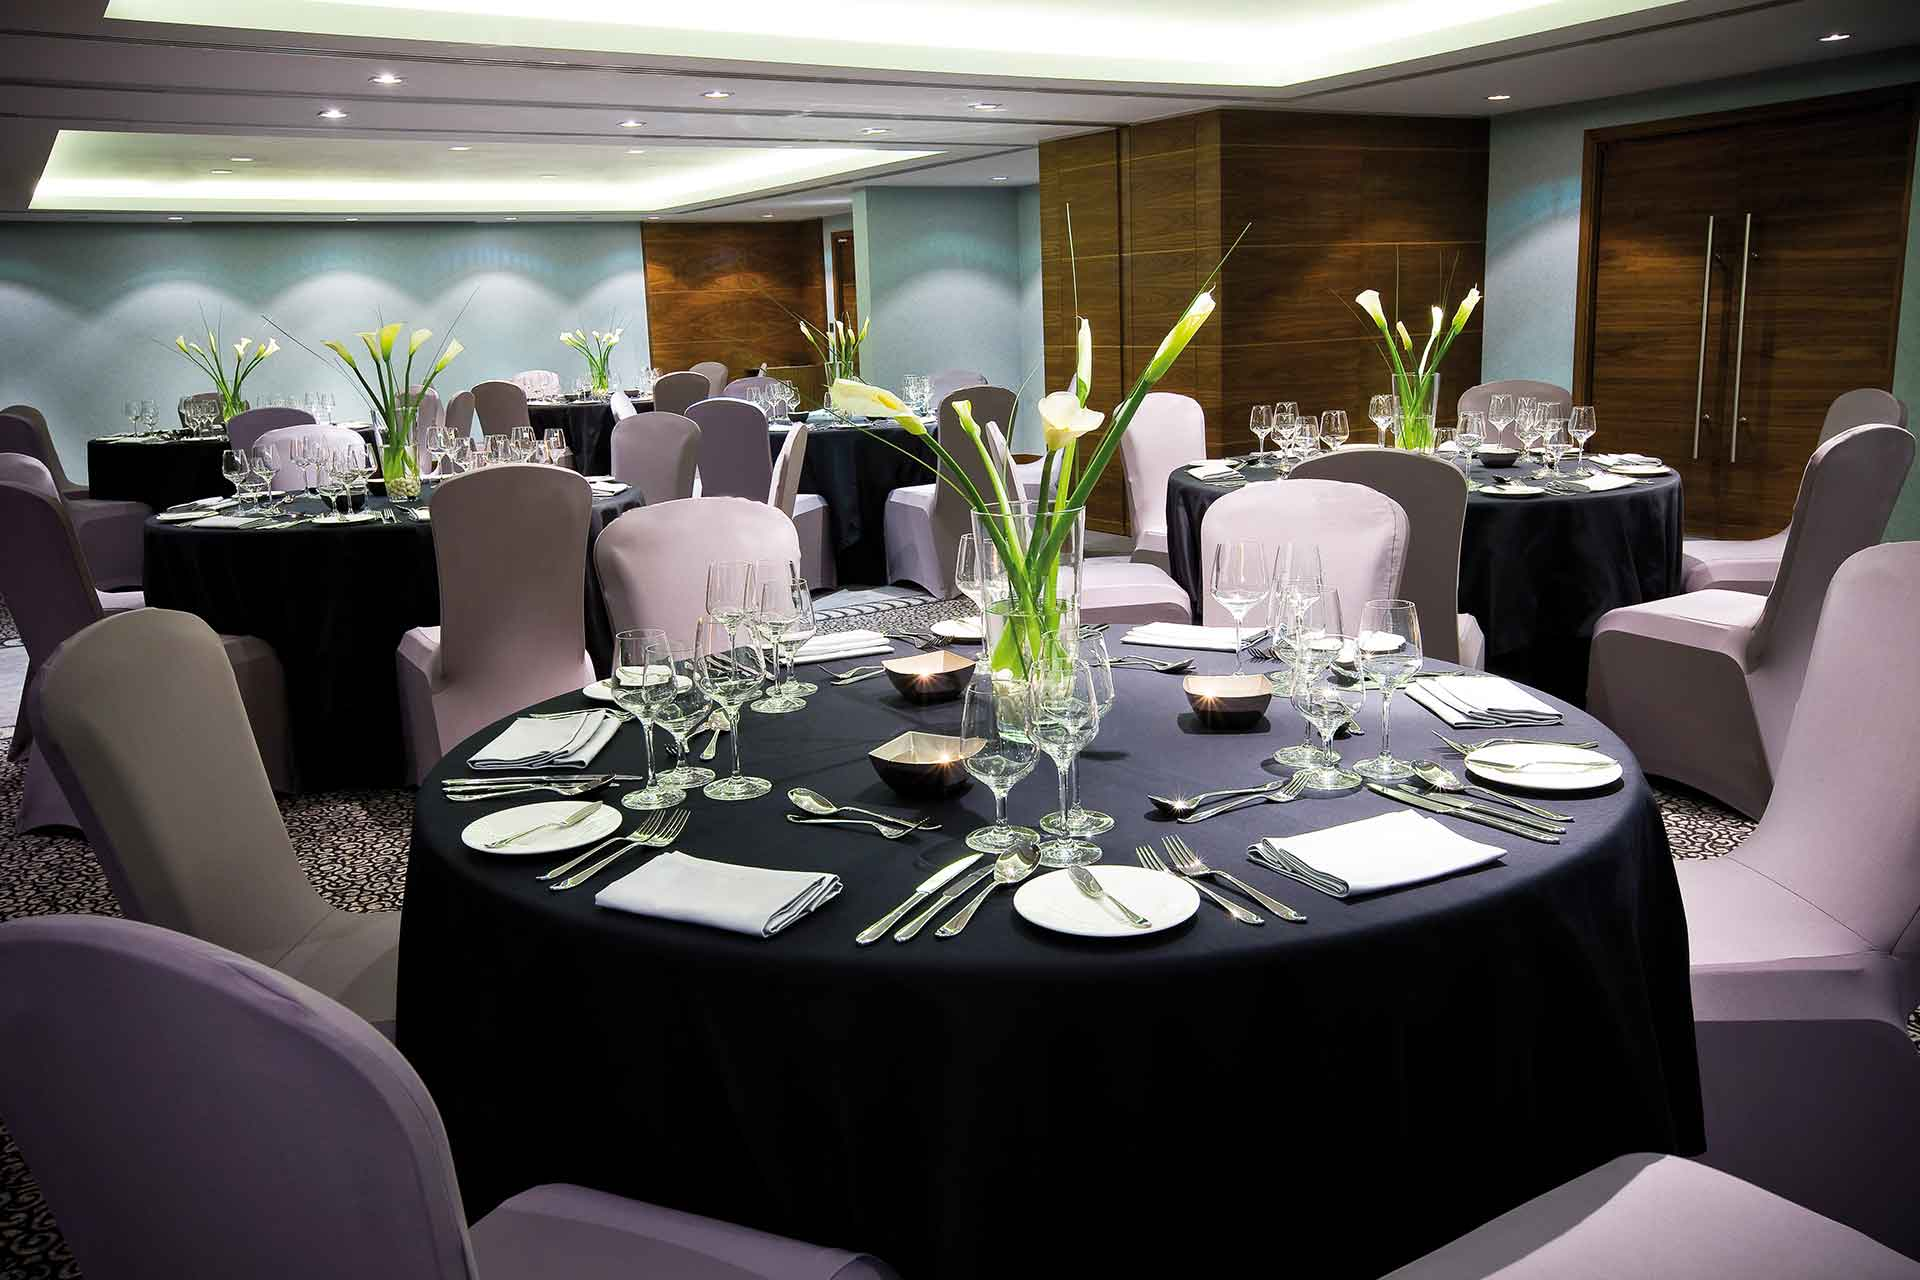 Banquet hall with a round table setup at AVANI Deira Dubai